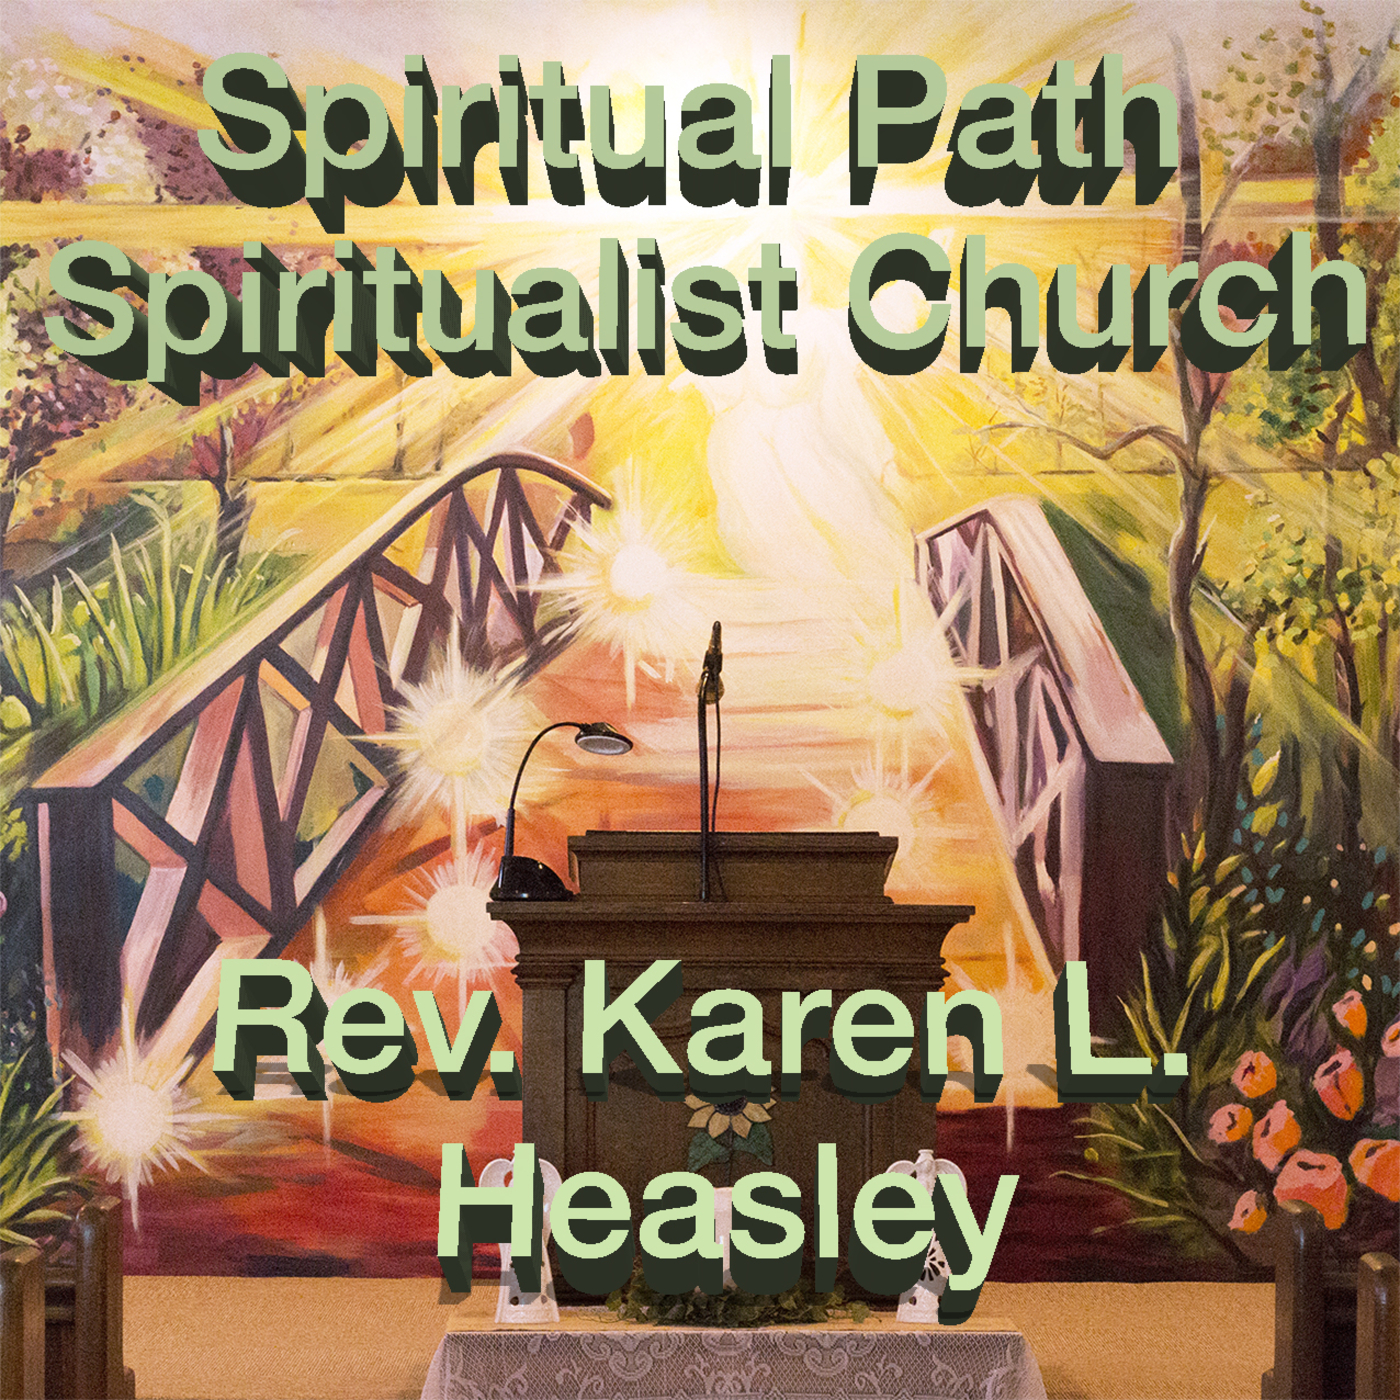 The Spiritual Path Church - Spiritual Podcast Series